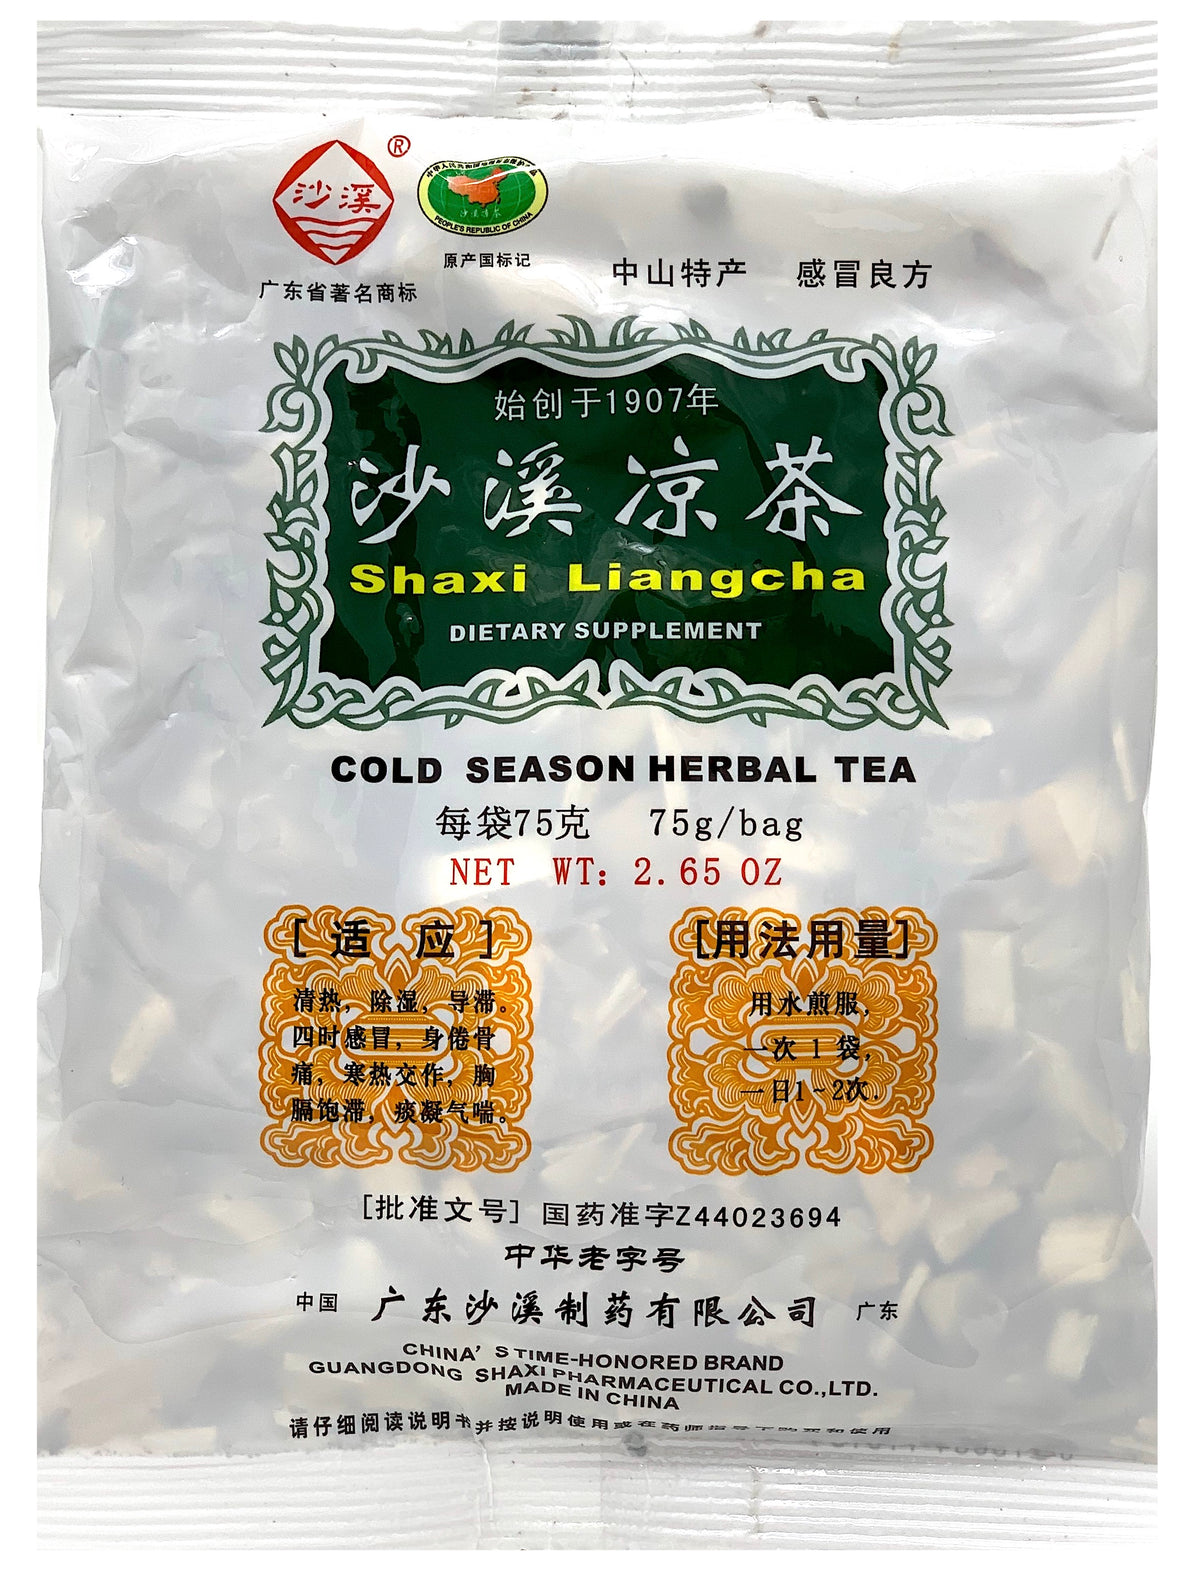 Cold Season Herbal Tea (ShaXi LiangCha Herbal Tea)